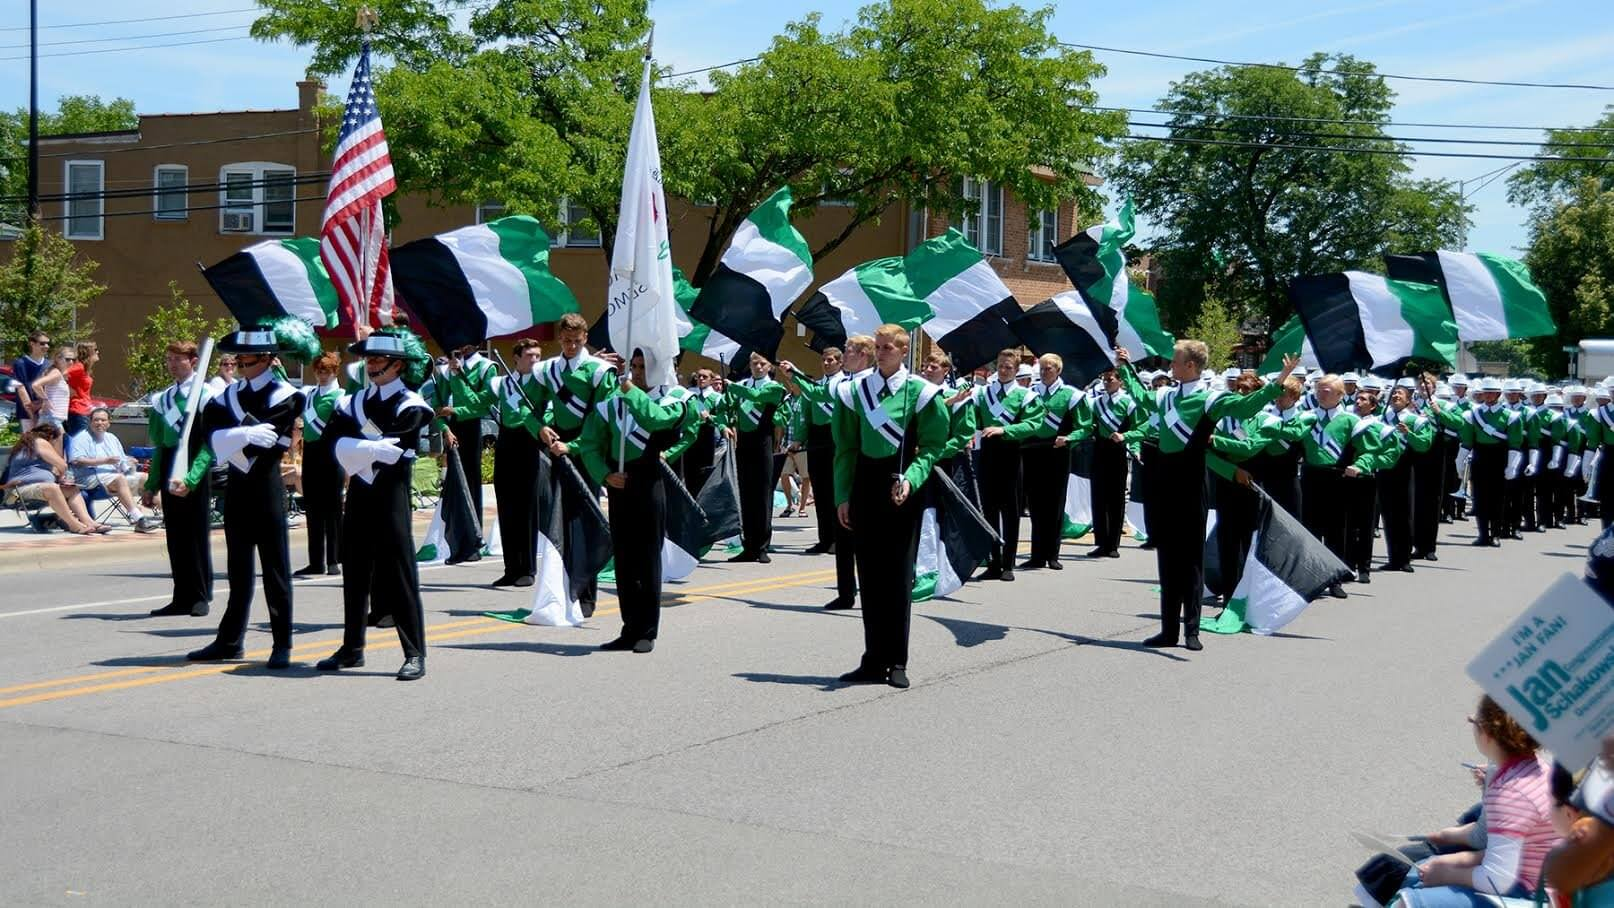 Fourth of July: Drum corps on parade!